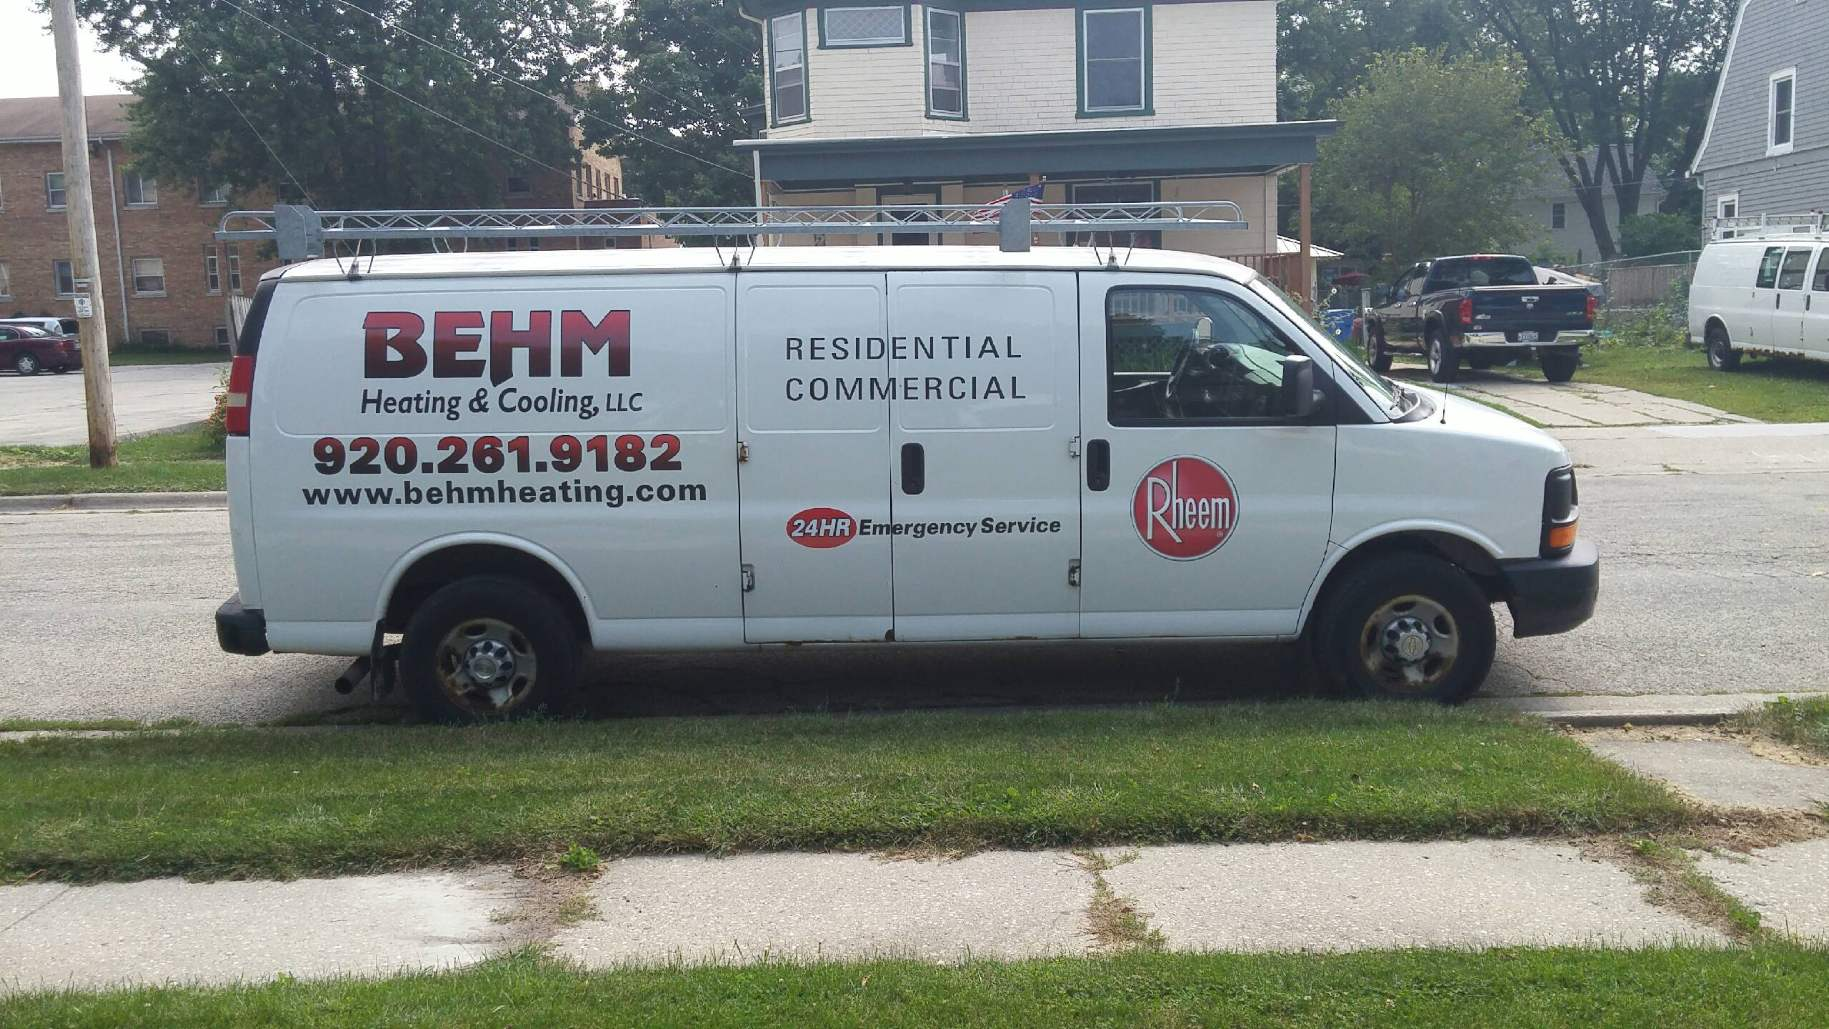 Behm Heating & Cooling image 0